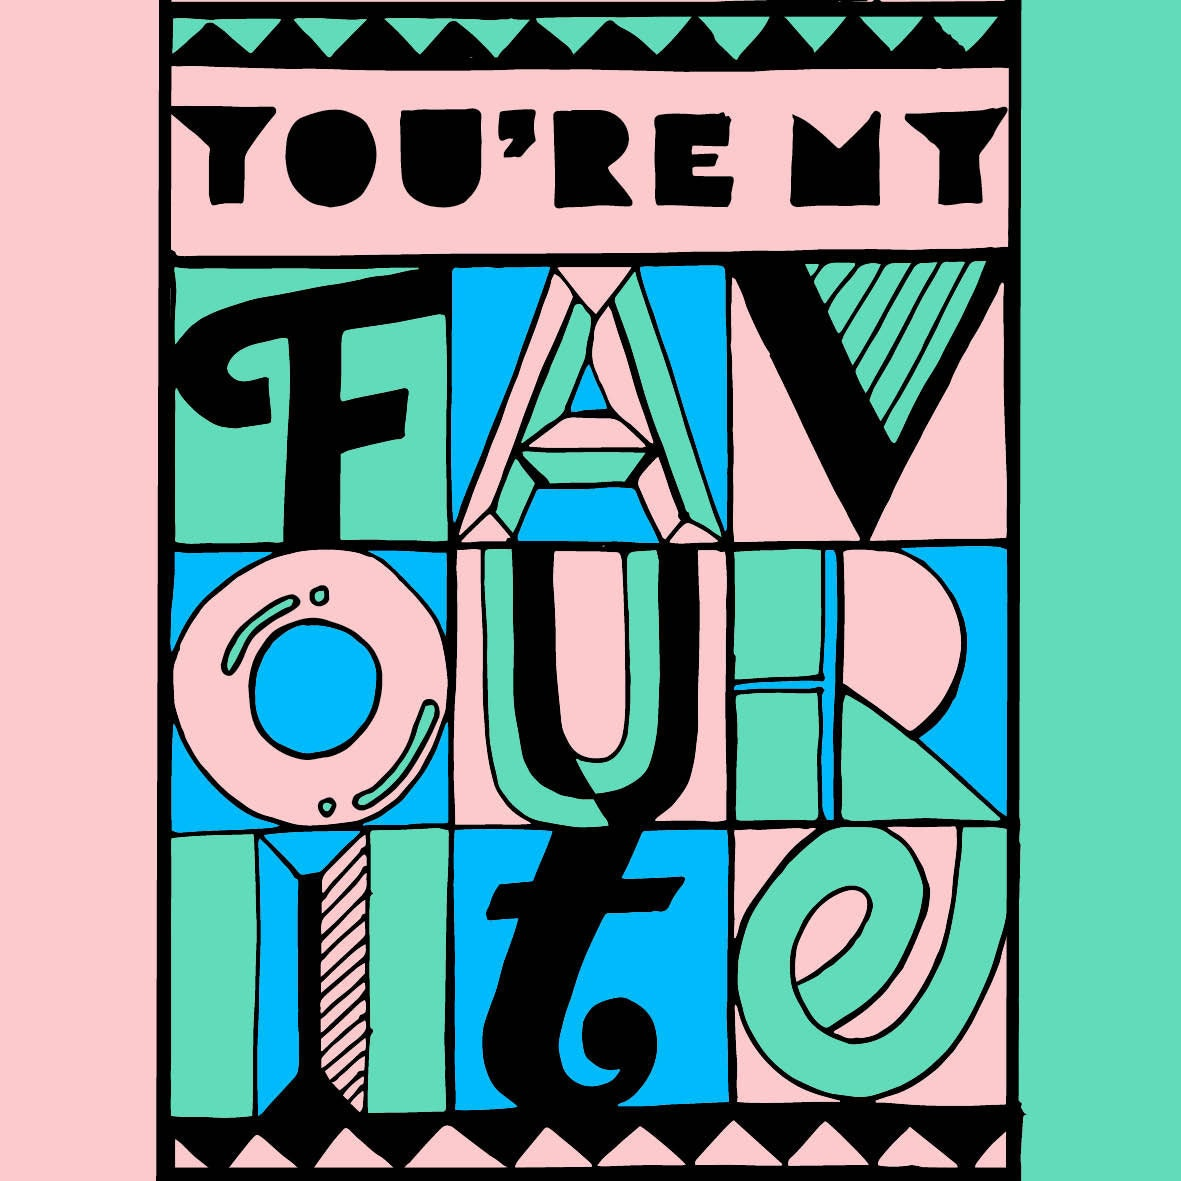 365 days of type favourite